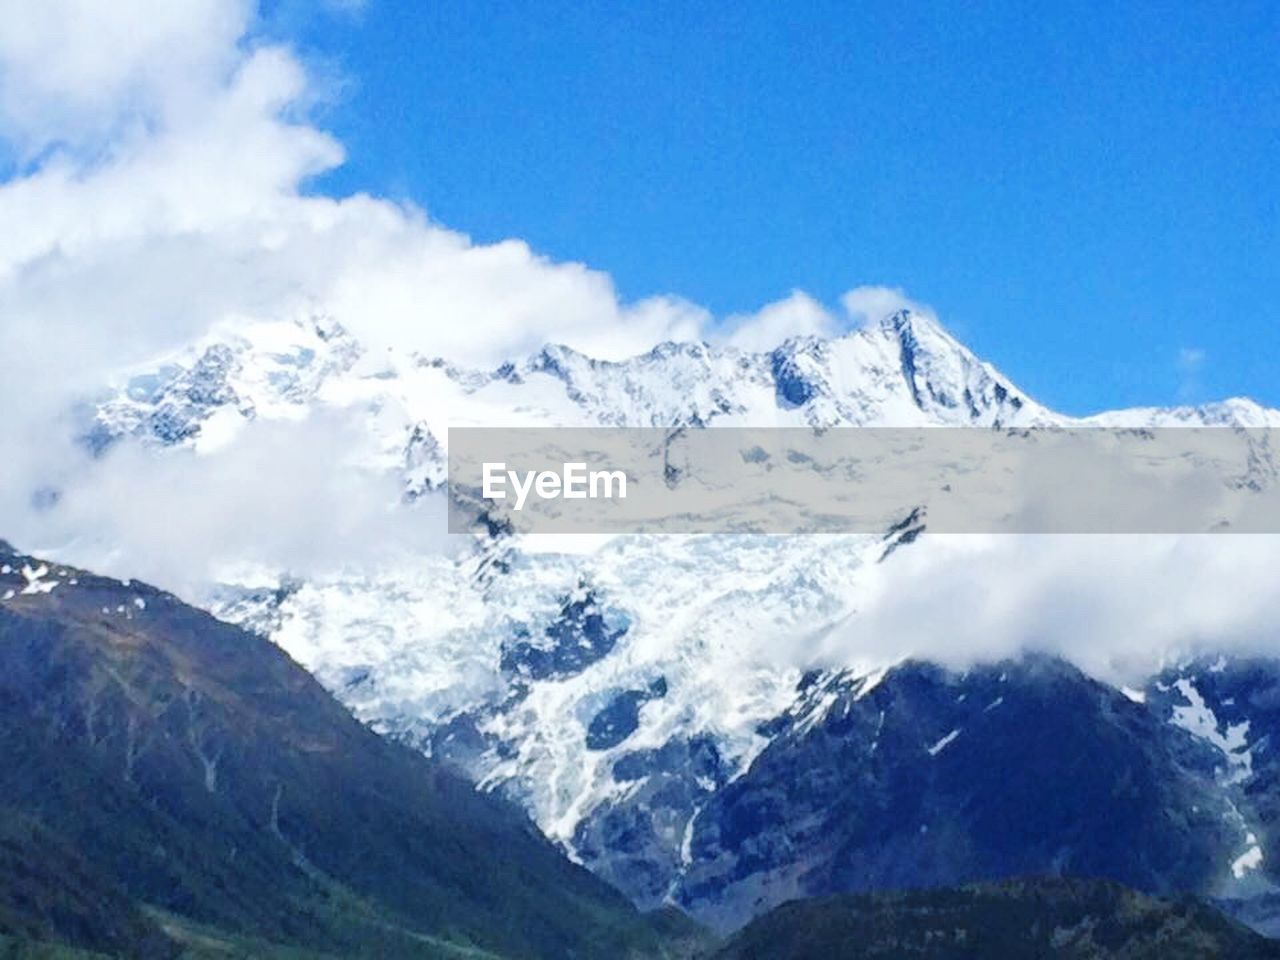 mountain, snow, nature, mountain range, beauty in nature, scenics, cold temperature, day, no people, winter, outdoors, snowcapped mountain, landscape, blue, sky, close-up